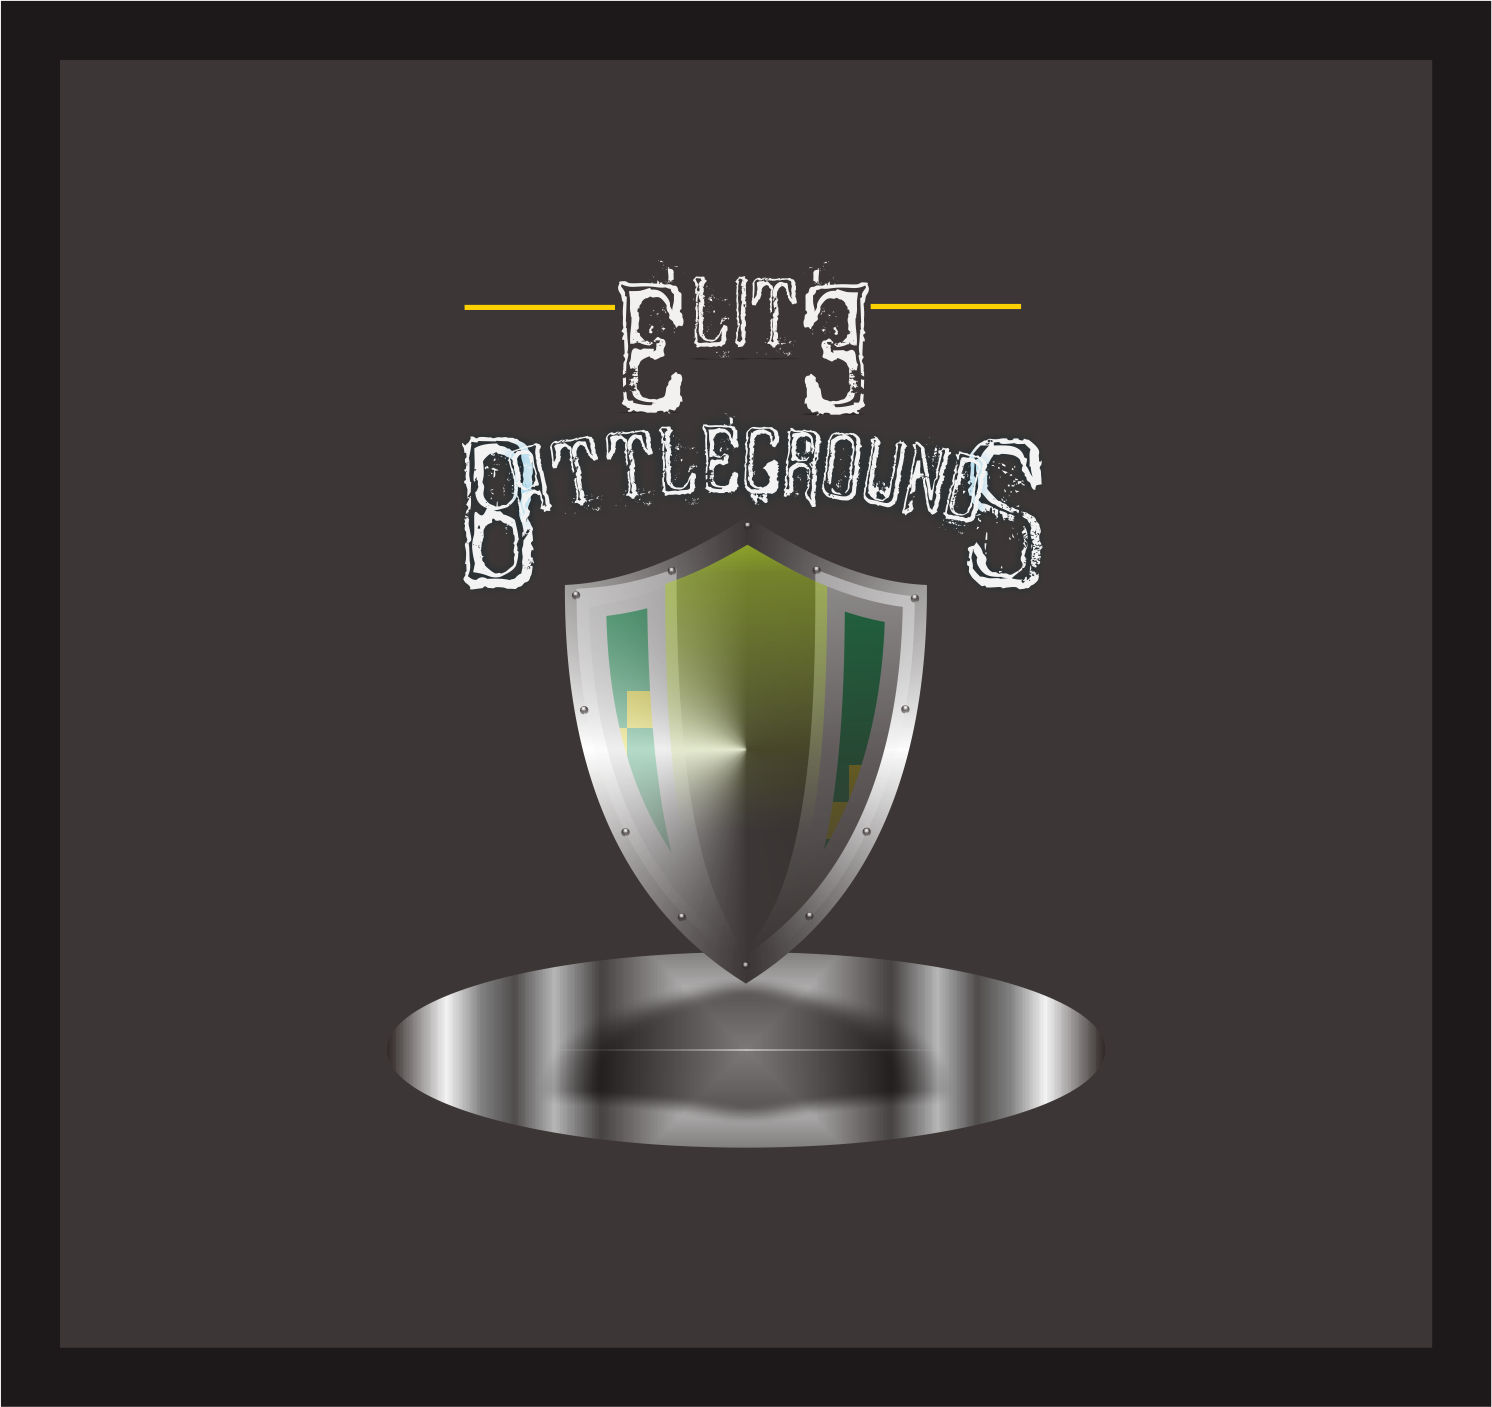 Logo Design by Teguh Hanuraga - Entry No. 89 in the Logo Design Contest Creative Logo Design for Elite Battlegrounds.